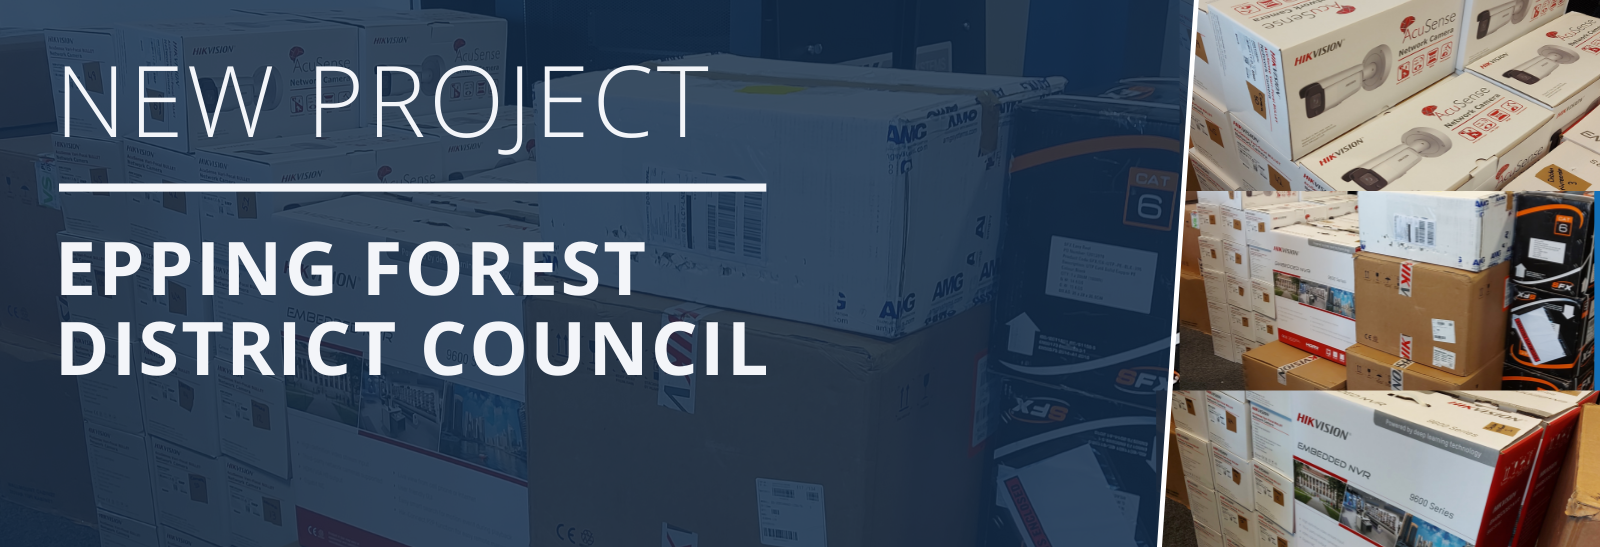 New project: Epping Forest District Council